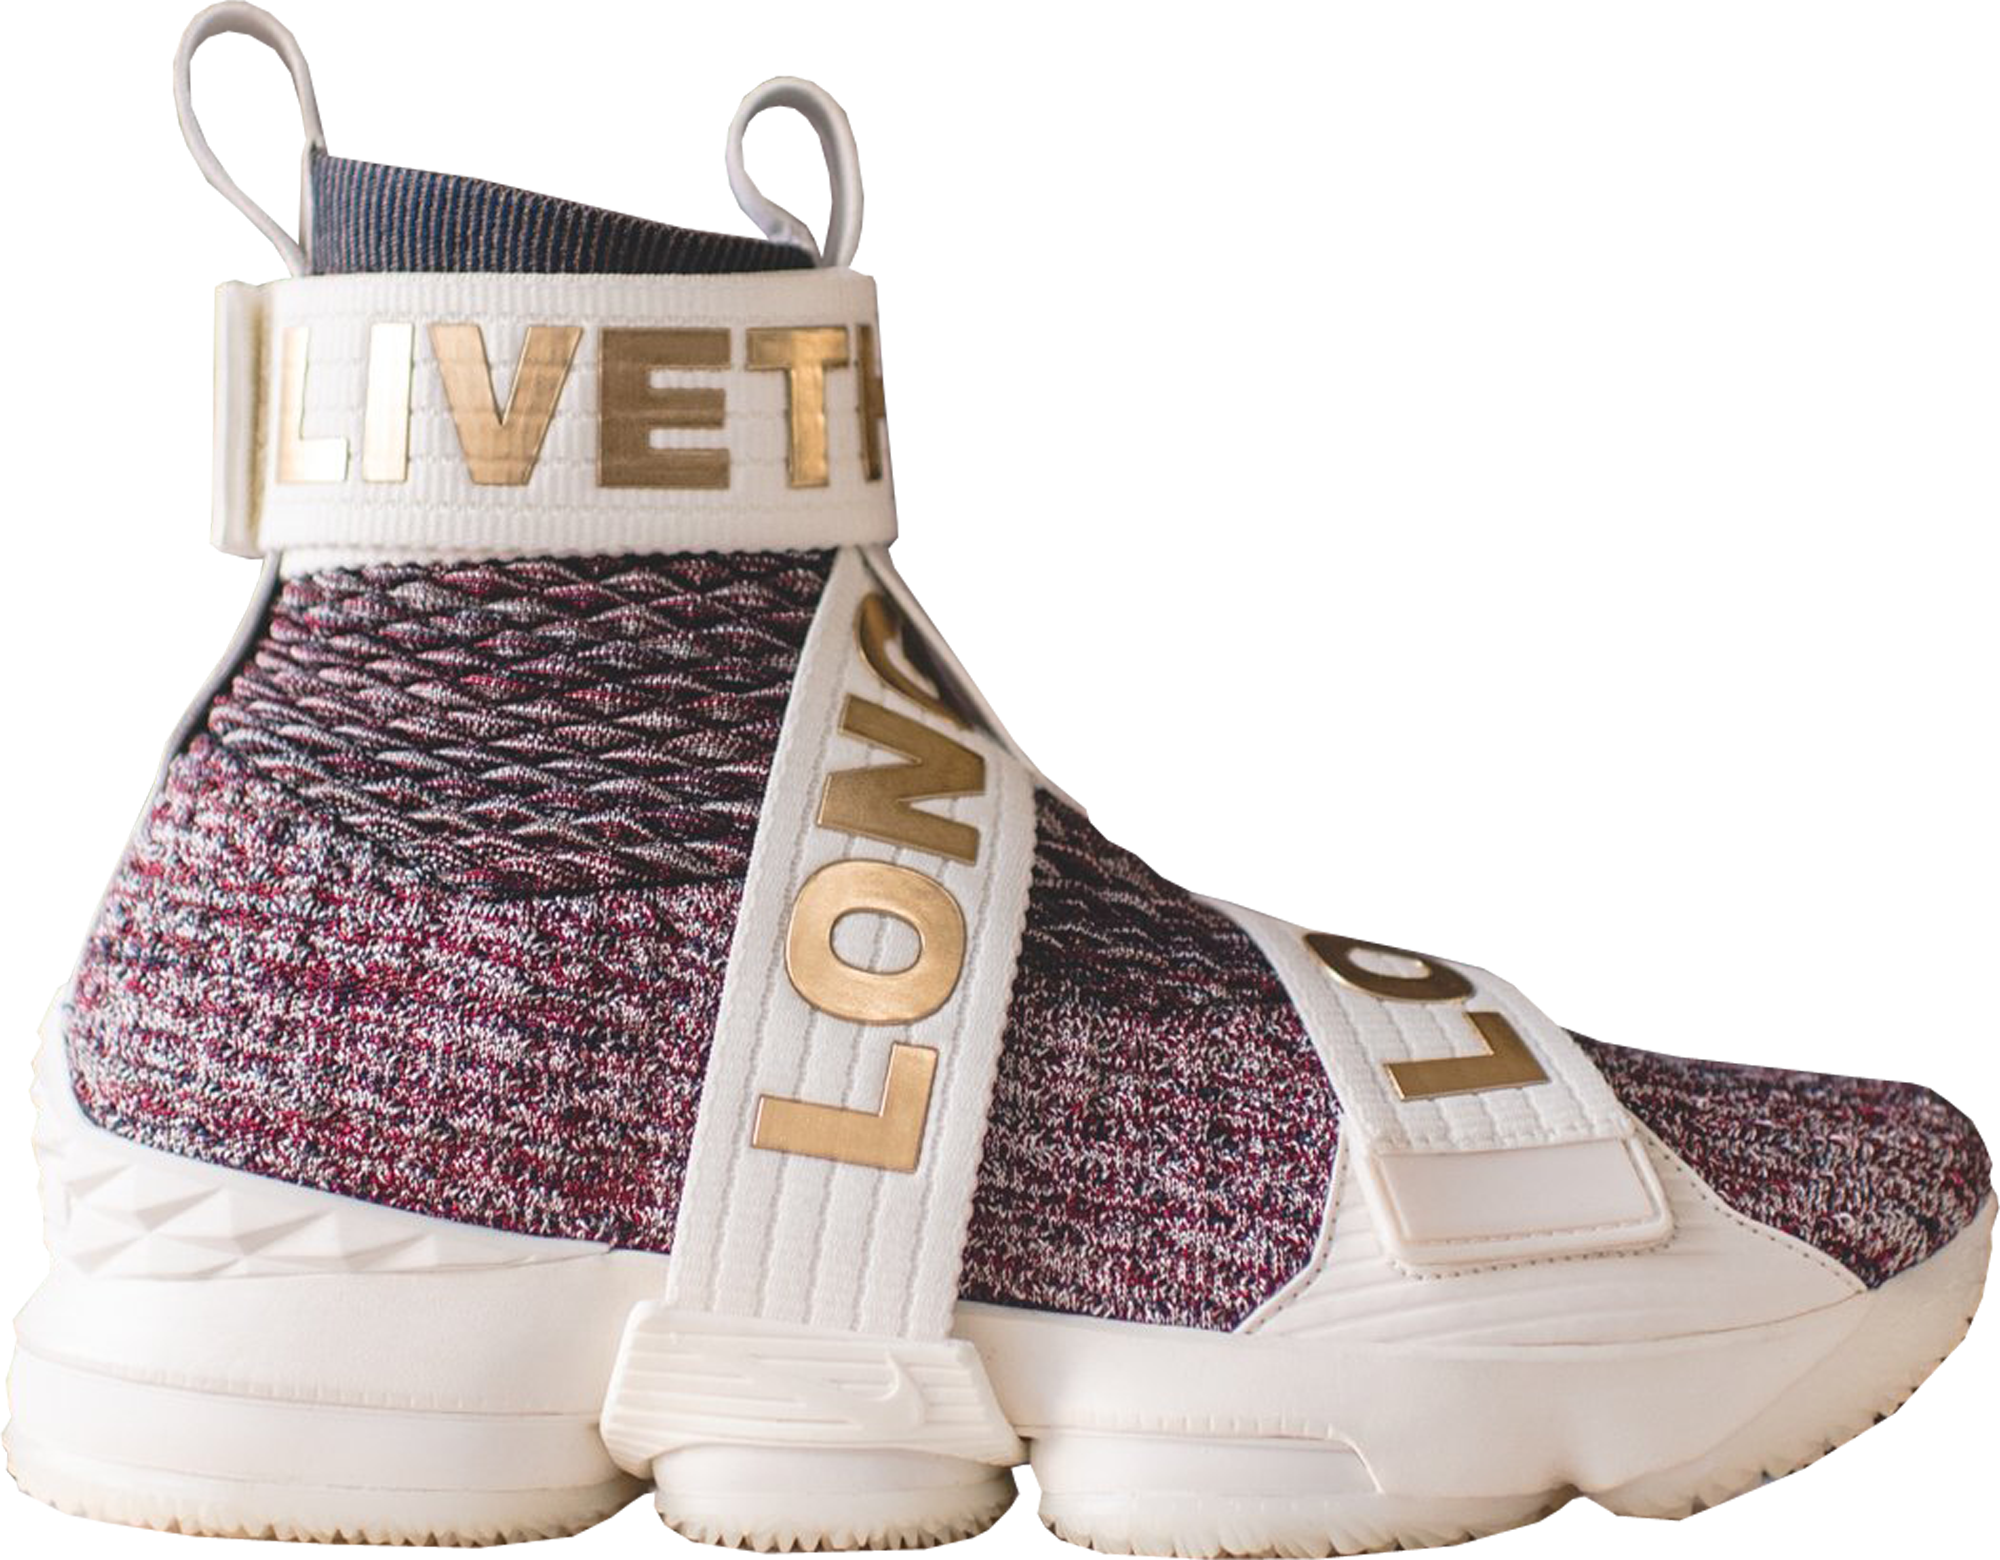 76986c5339f KITH x Nike LeBron 15 Lifestyle Stained Glass - StockX News